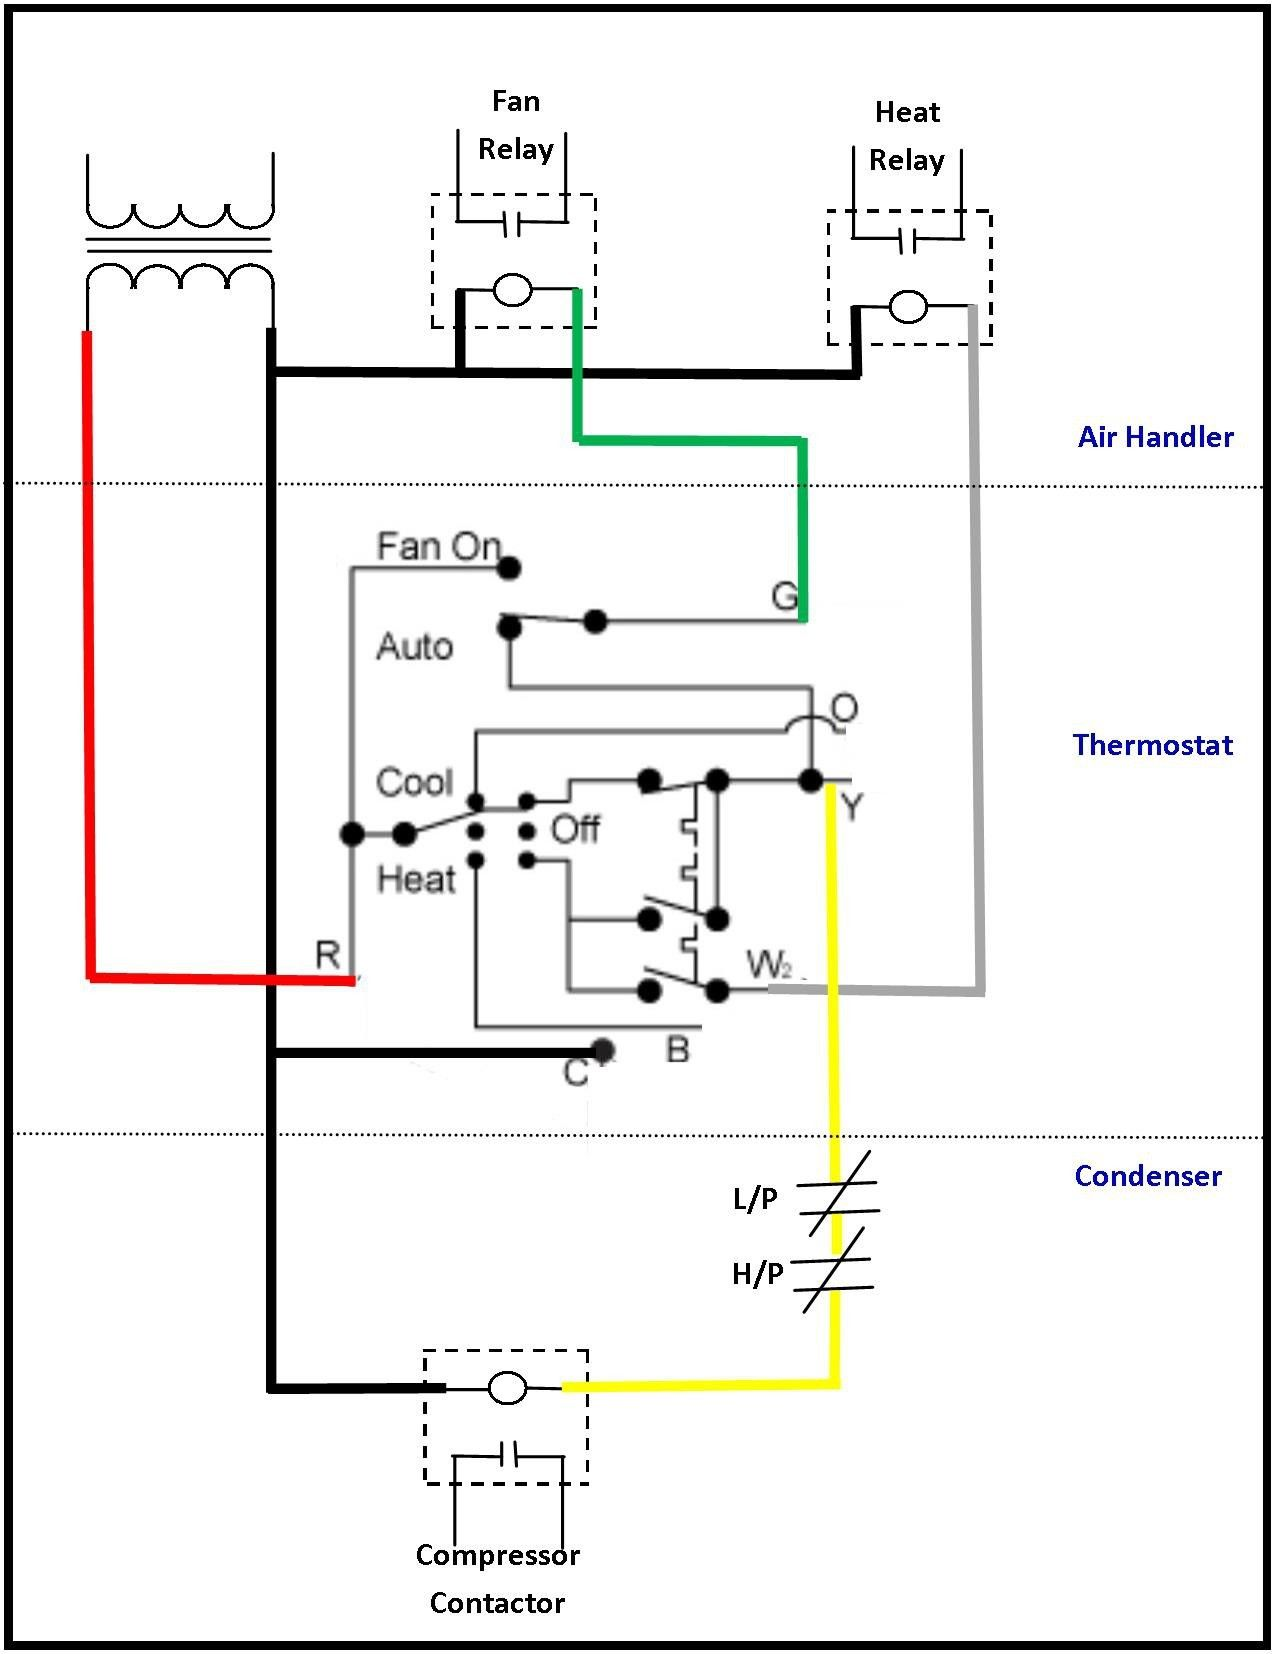 [SCHEMATICS_4UK]  Gas Furnace Thermostat Wiring Diagram - Surface Wiring Channel for Wiring  Diagram Schematics | Arcoaire Electric Furnace Wiring Diagram |  | Wiring Diagram Schematics